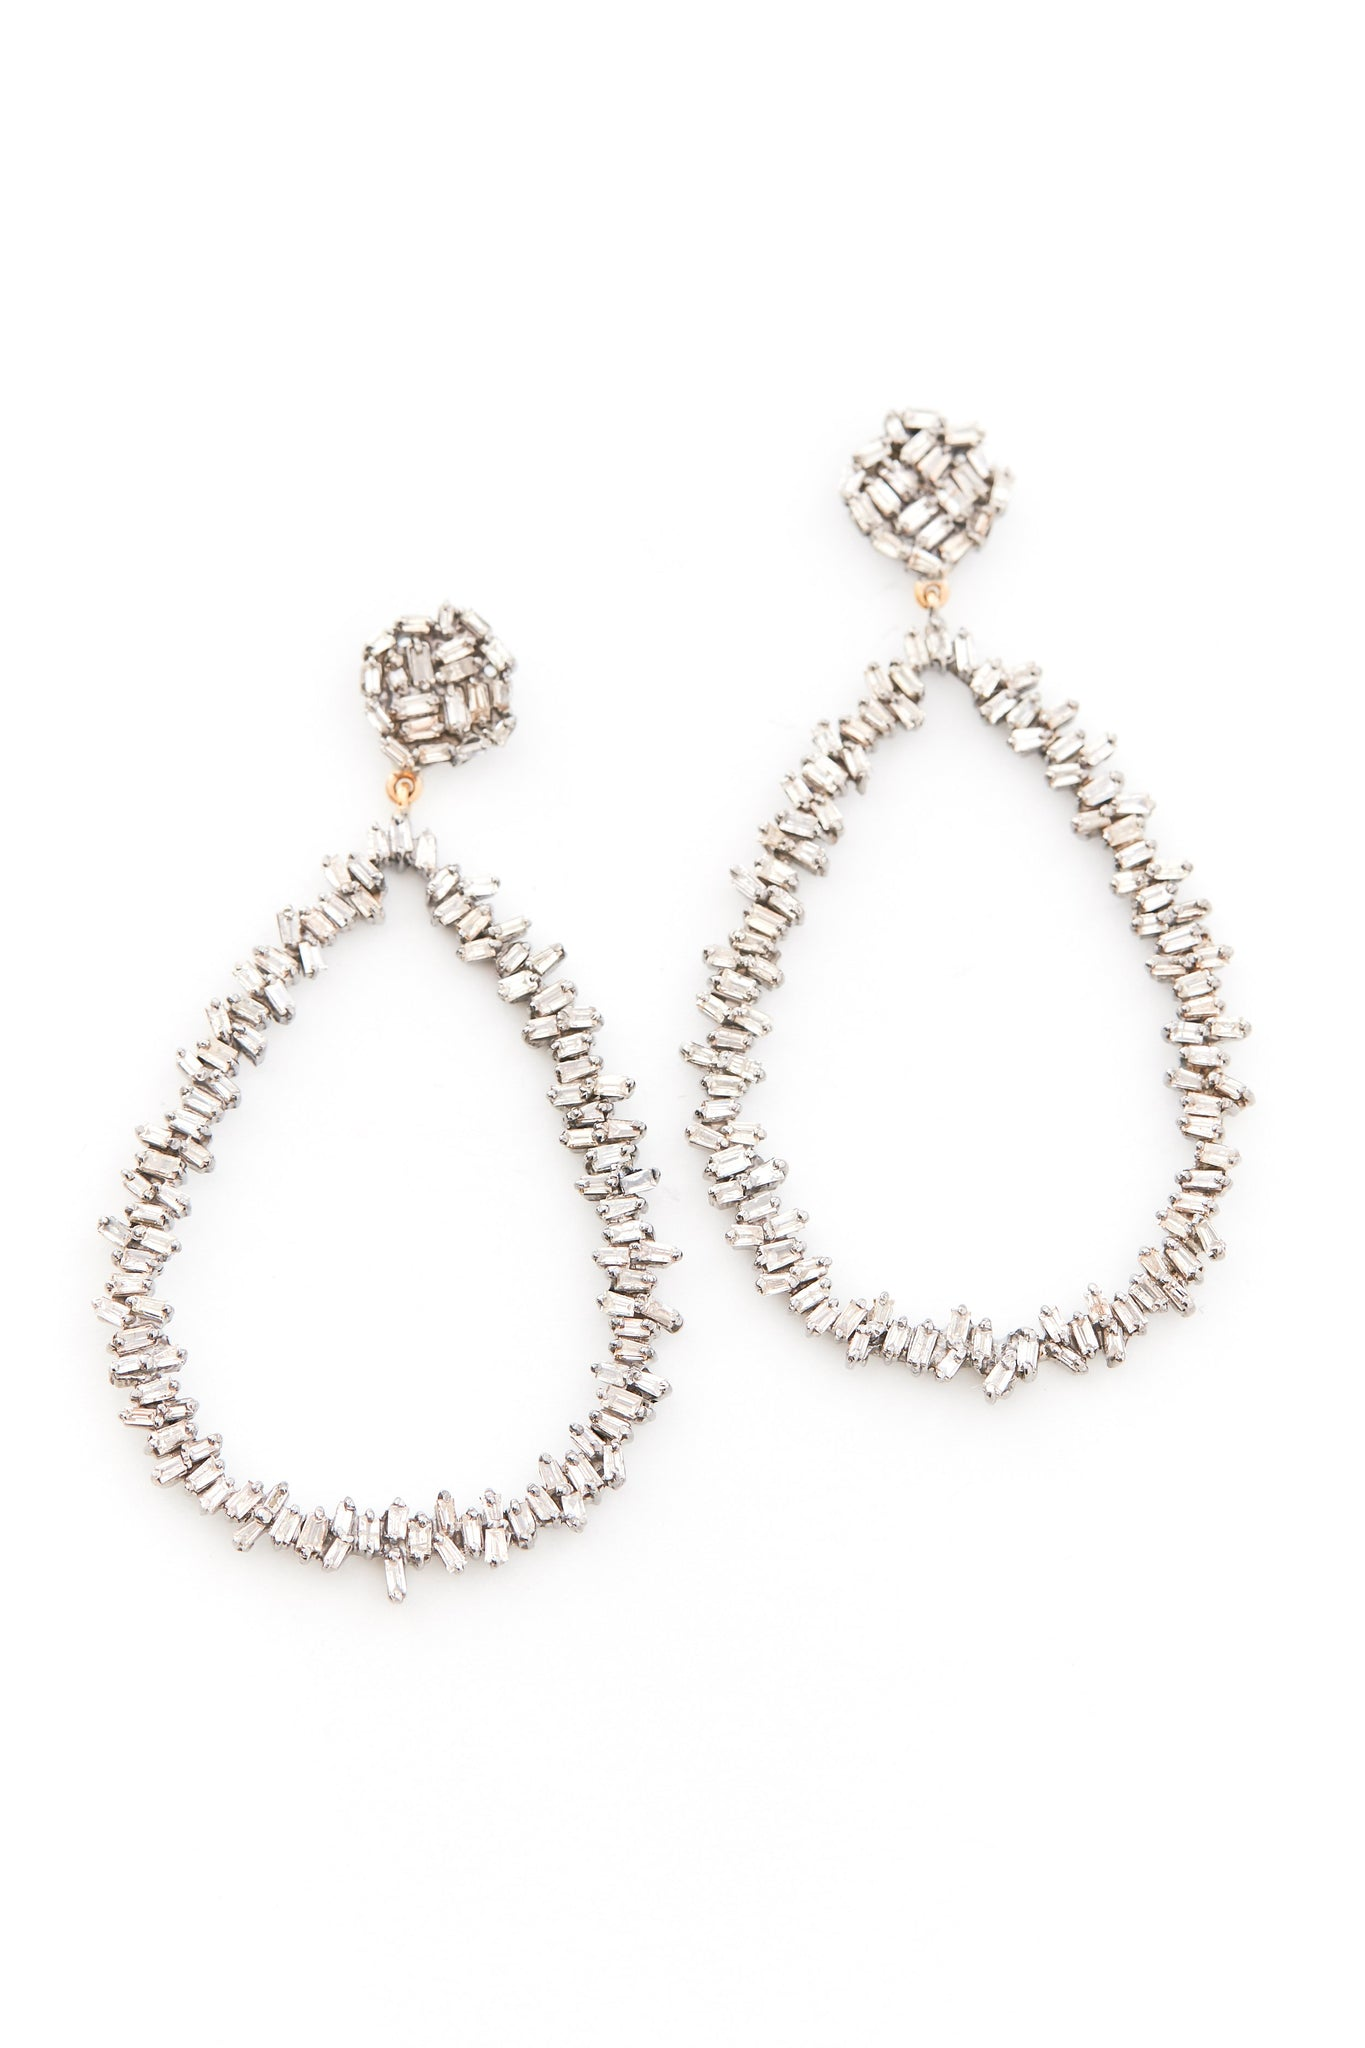 Silver Open Oval Brilliant Baguette Diamond Earrings